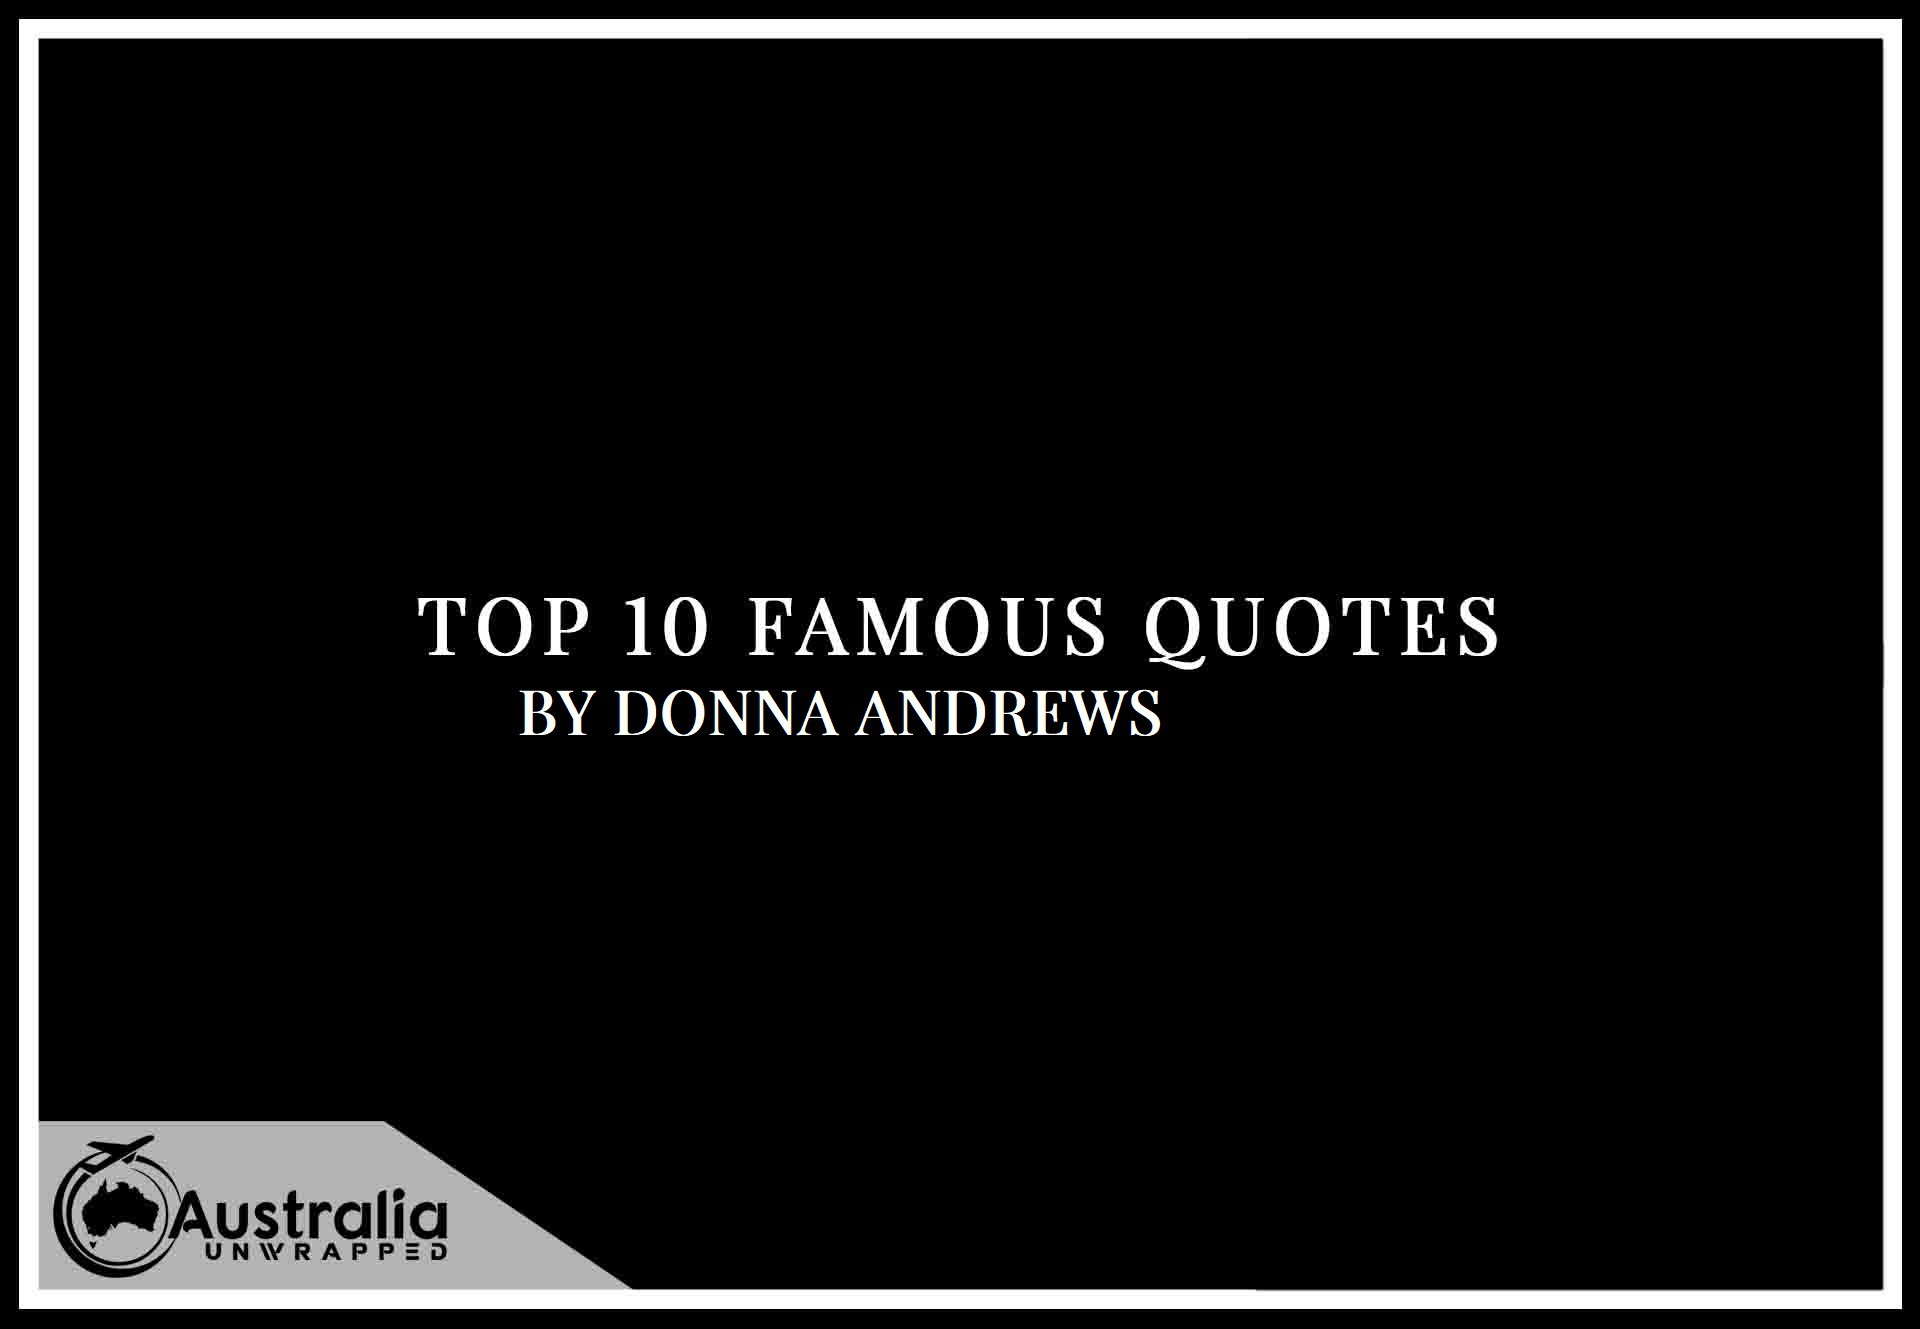 Top 10 Famous Quotes by Author Donna Andrews